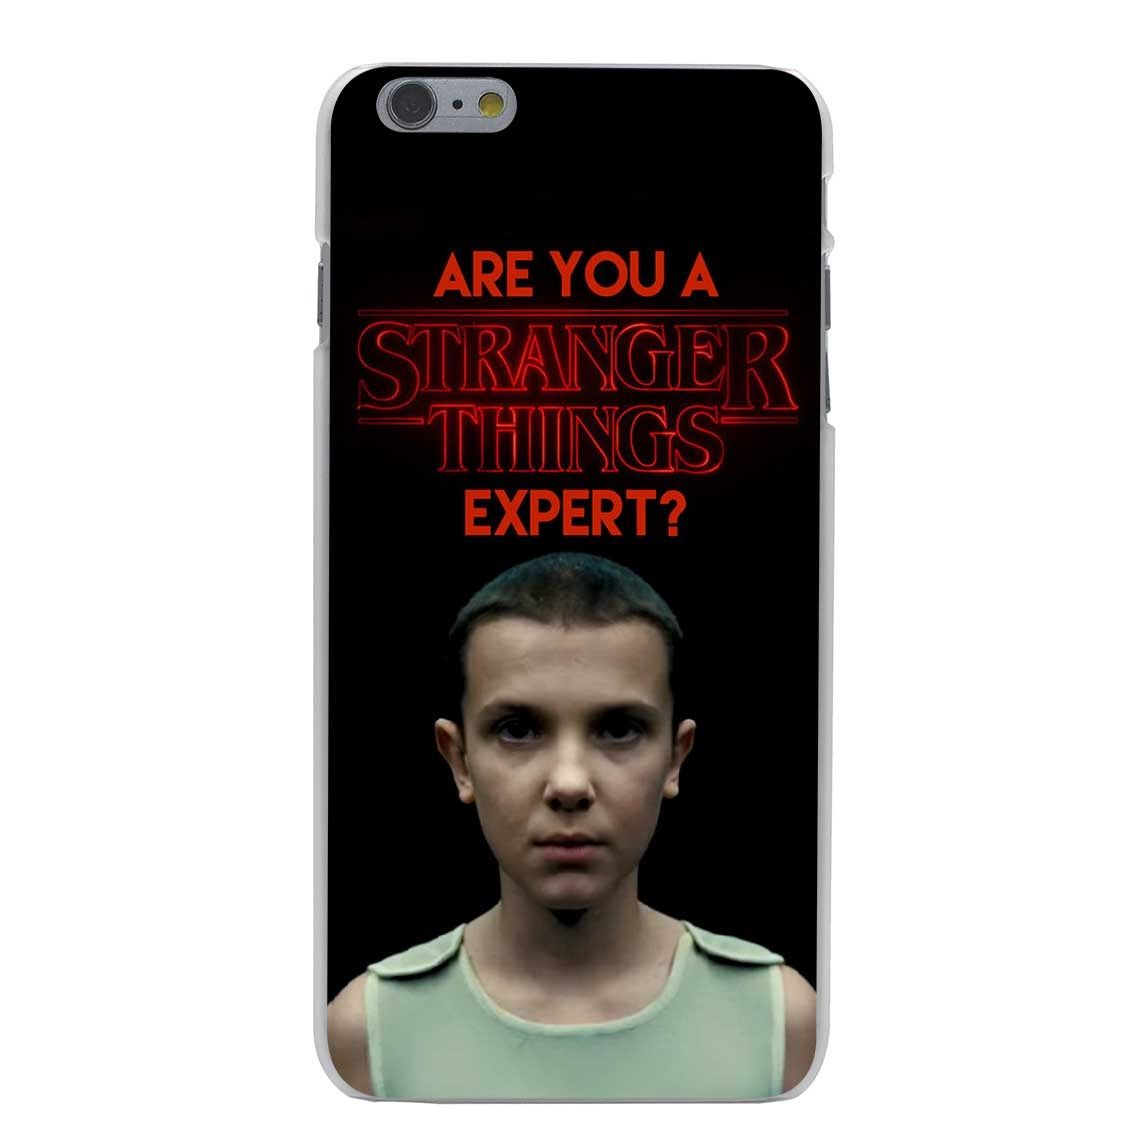 official photos 76ade cb9a9 Phone Cases | Phone Cases | Stranger things, Phone cases, Phone